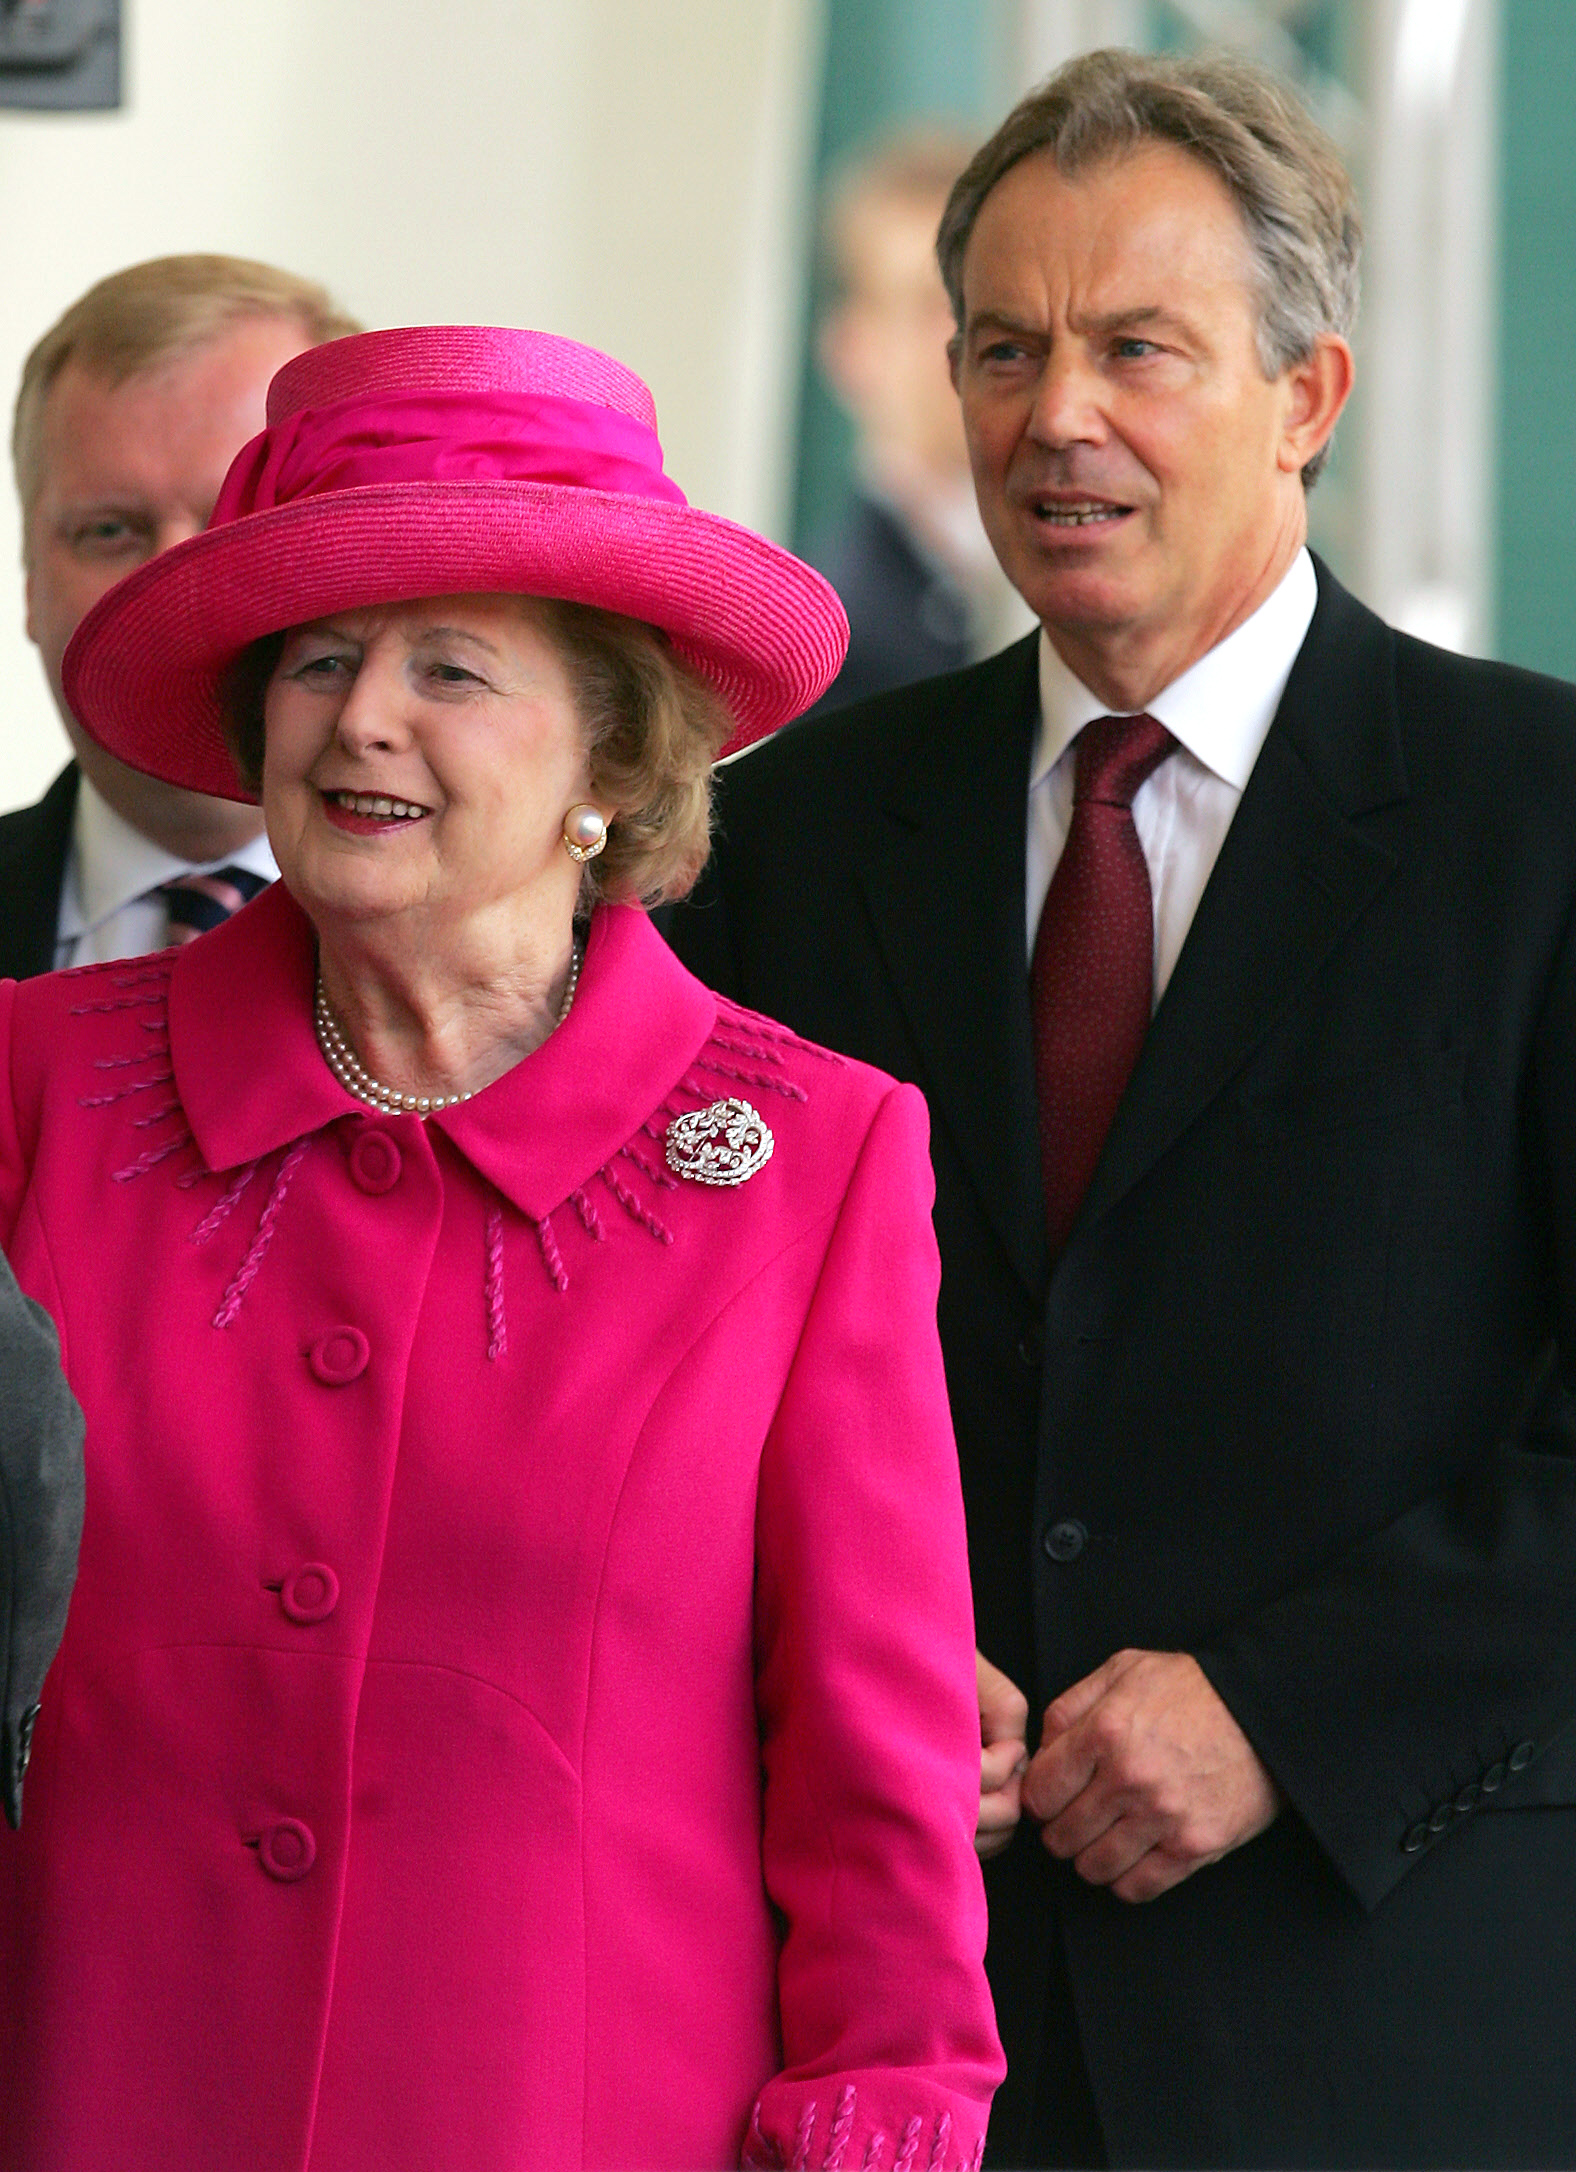 thatcher and blair The first female prime minister of britain, margaret thatcher was a controversial figurehead of conservative ideology during her time in office  tony blair and nearly 600 other friends, family.